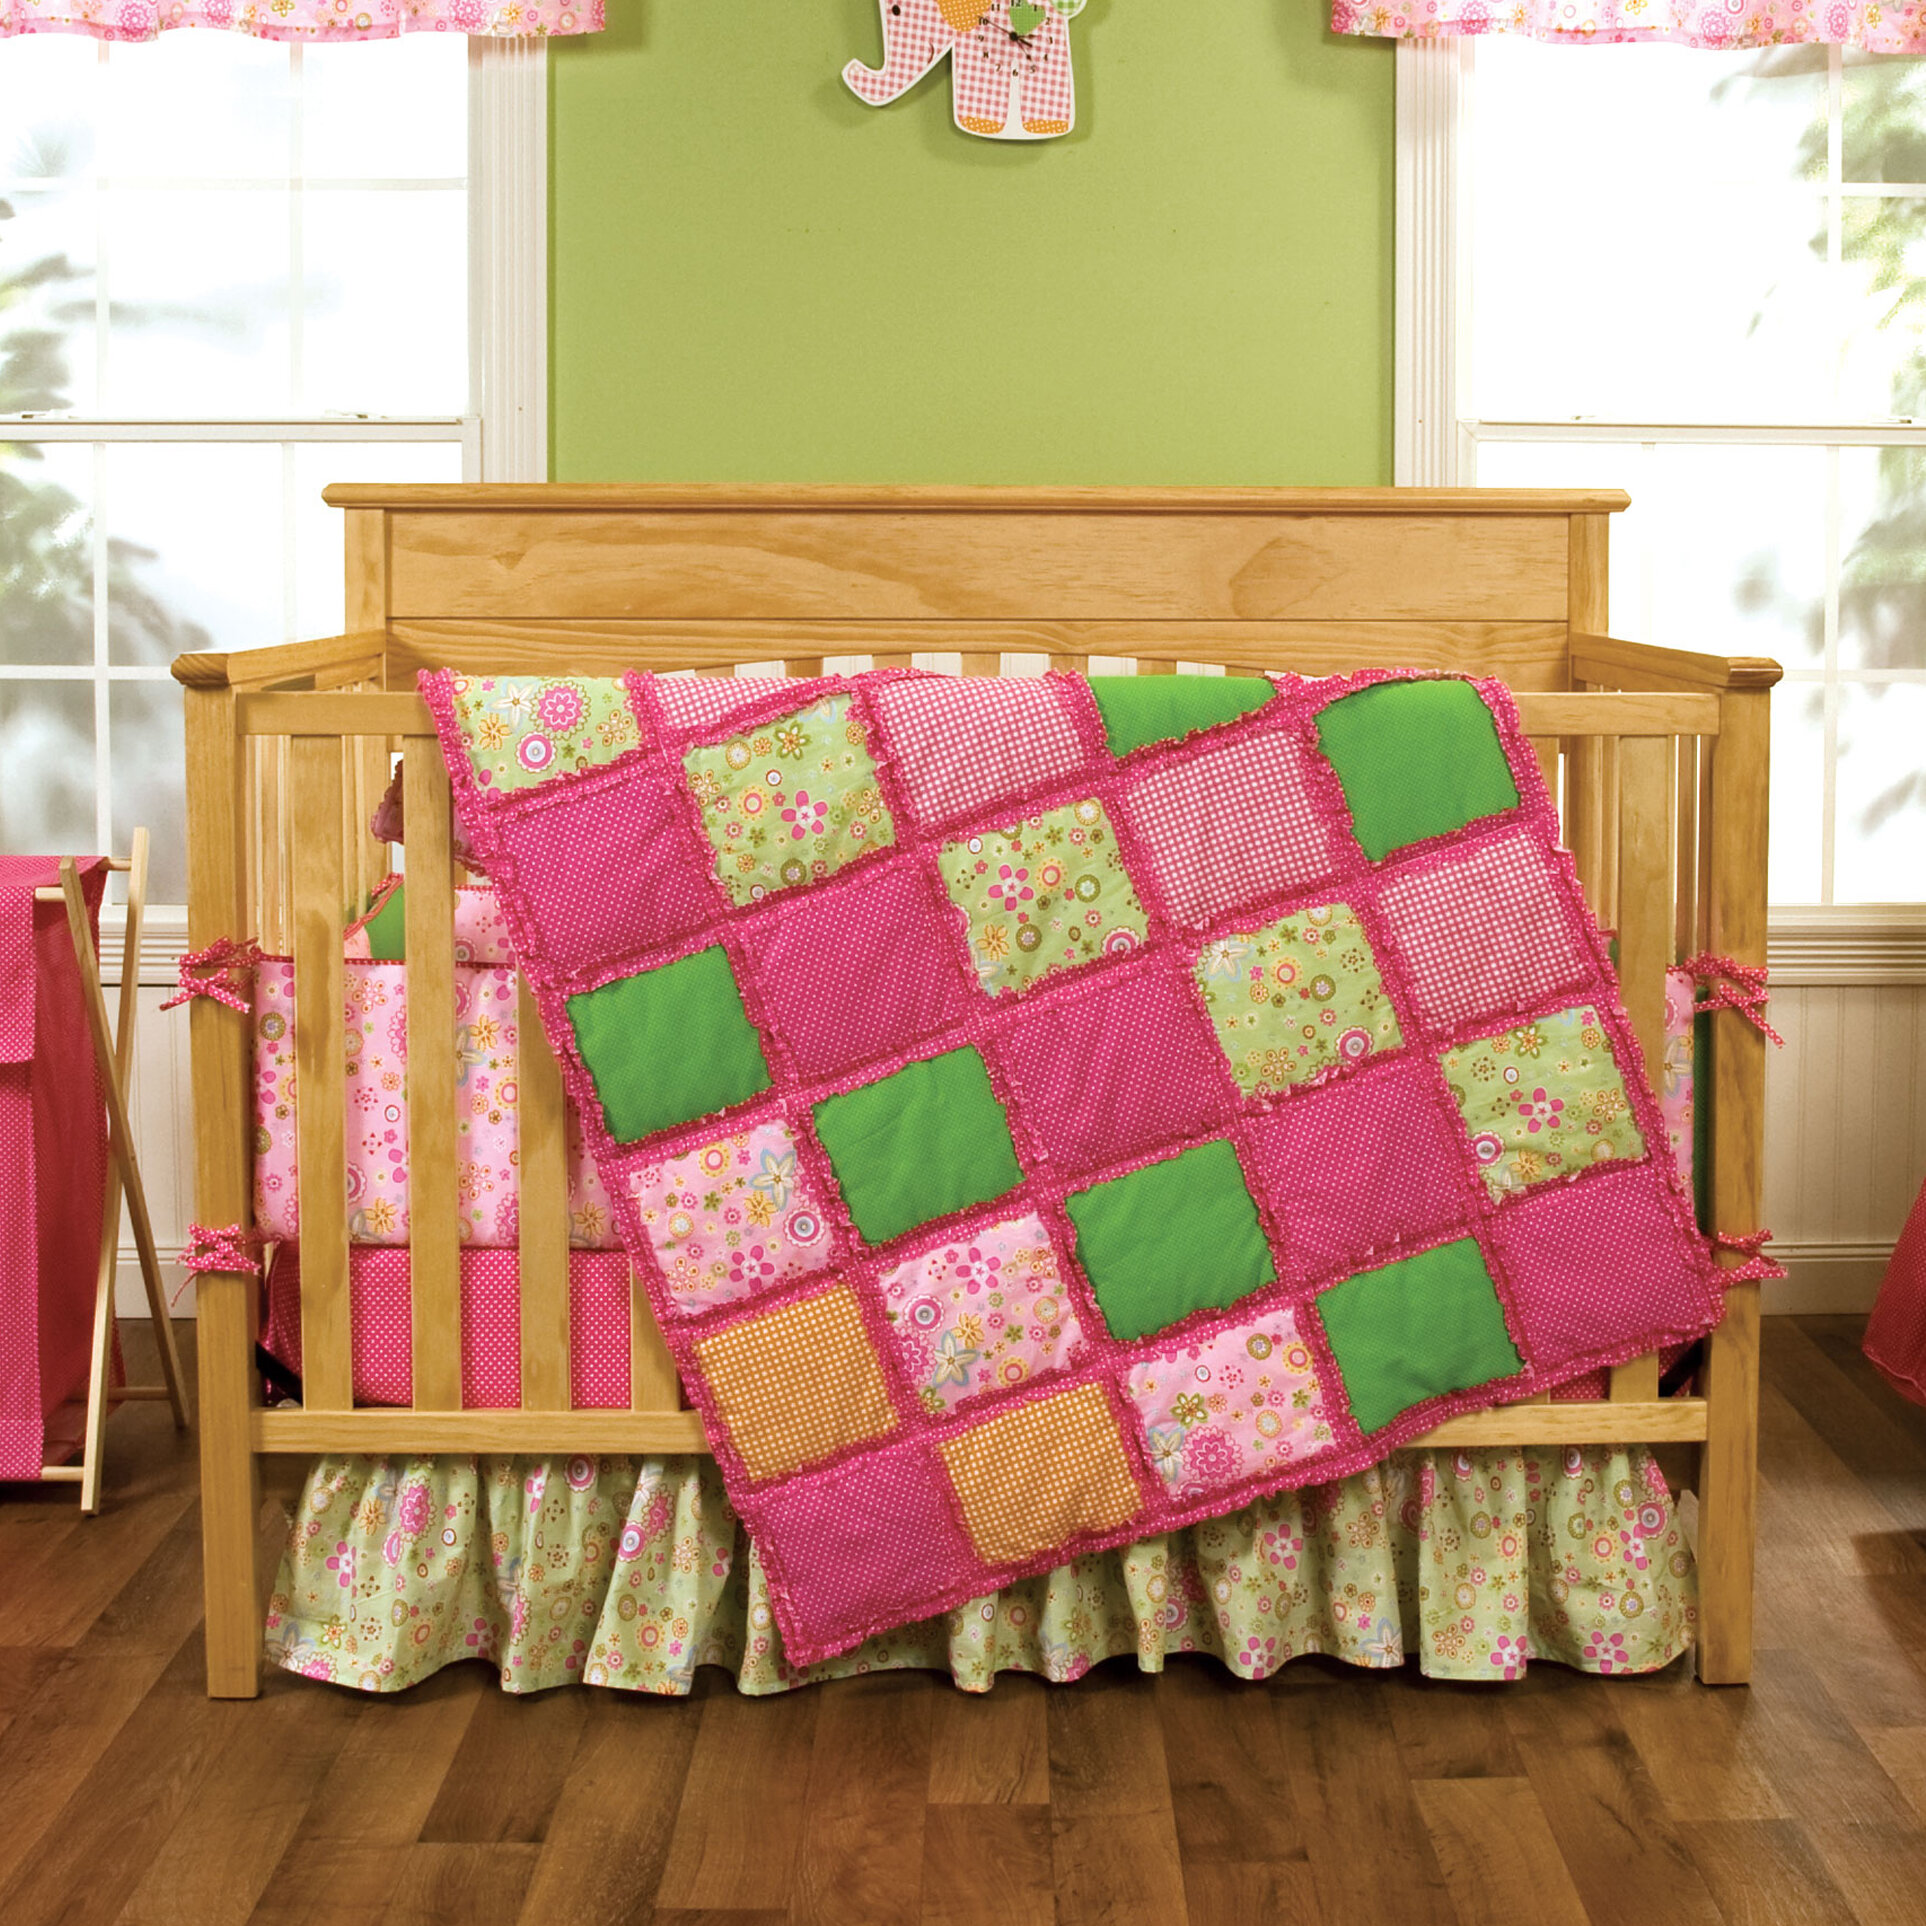 orange and pink crib bedding